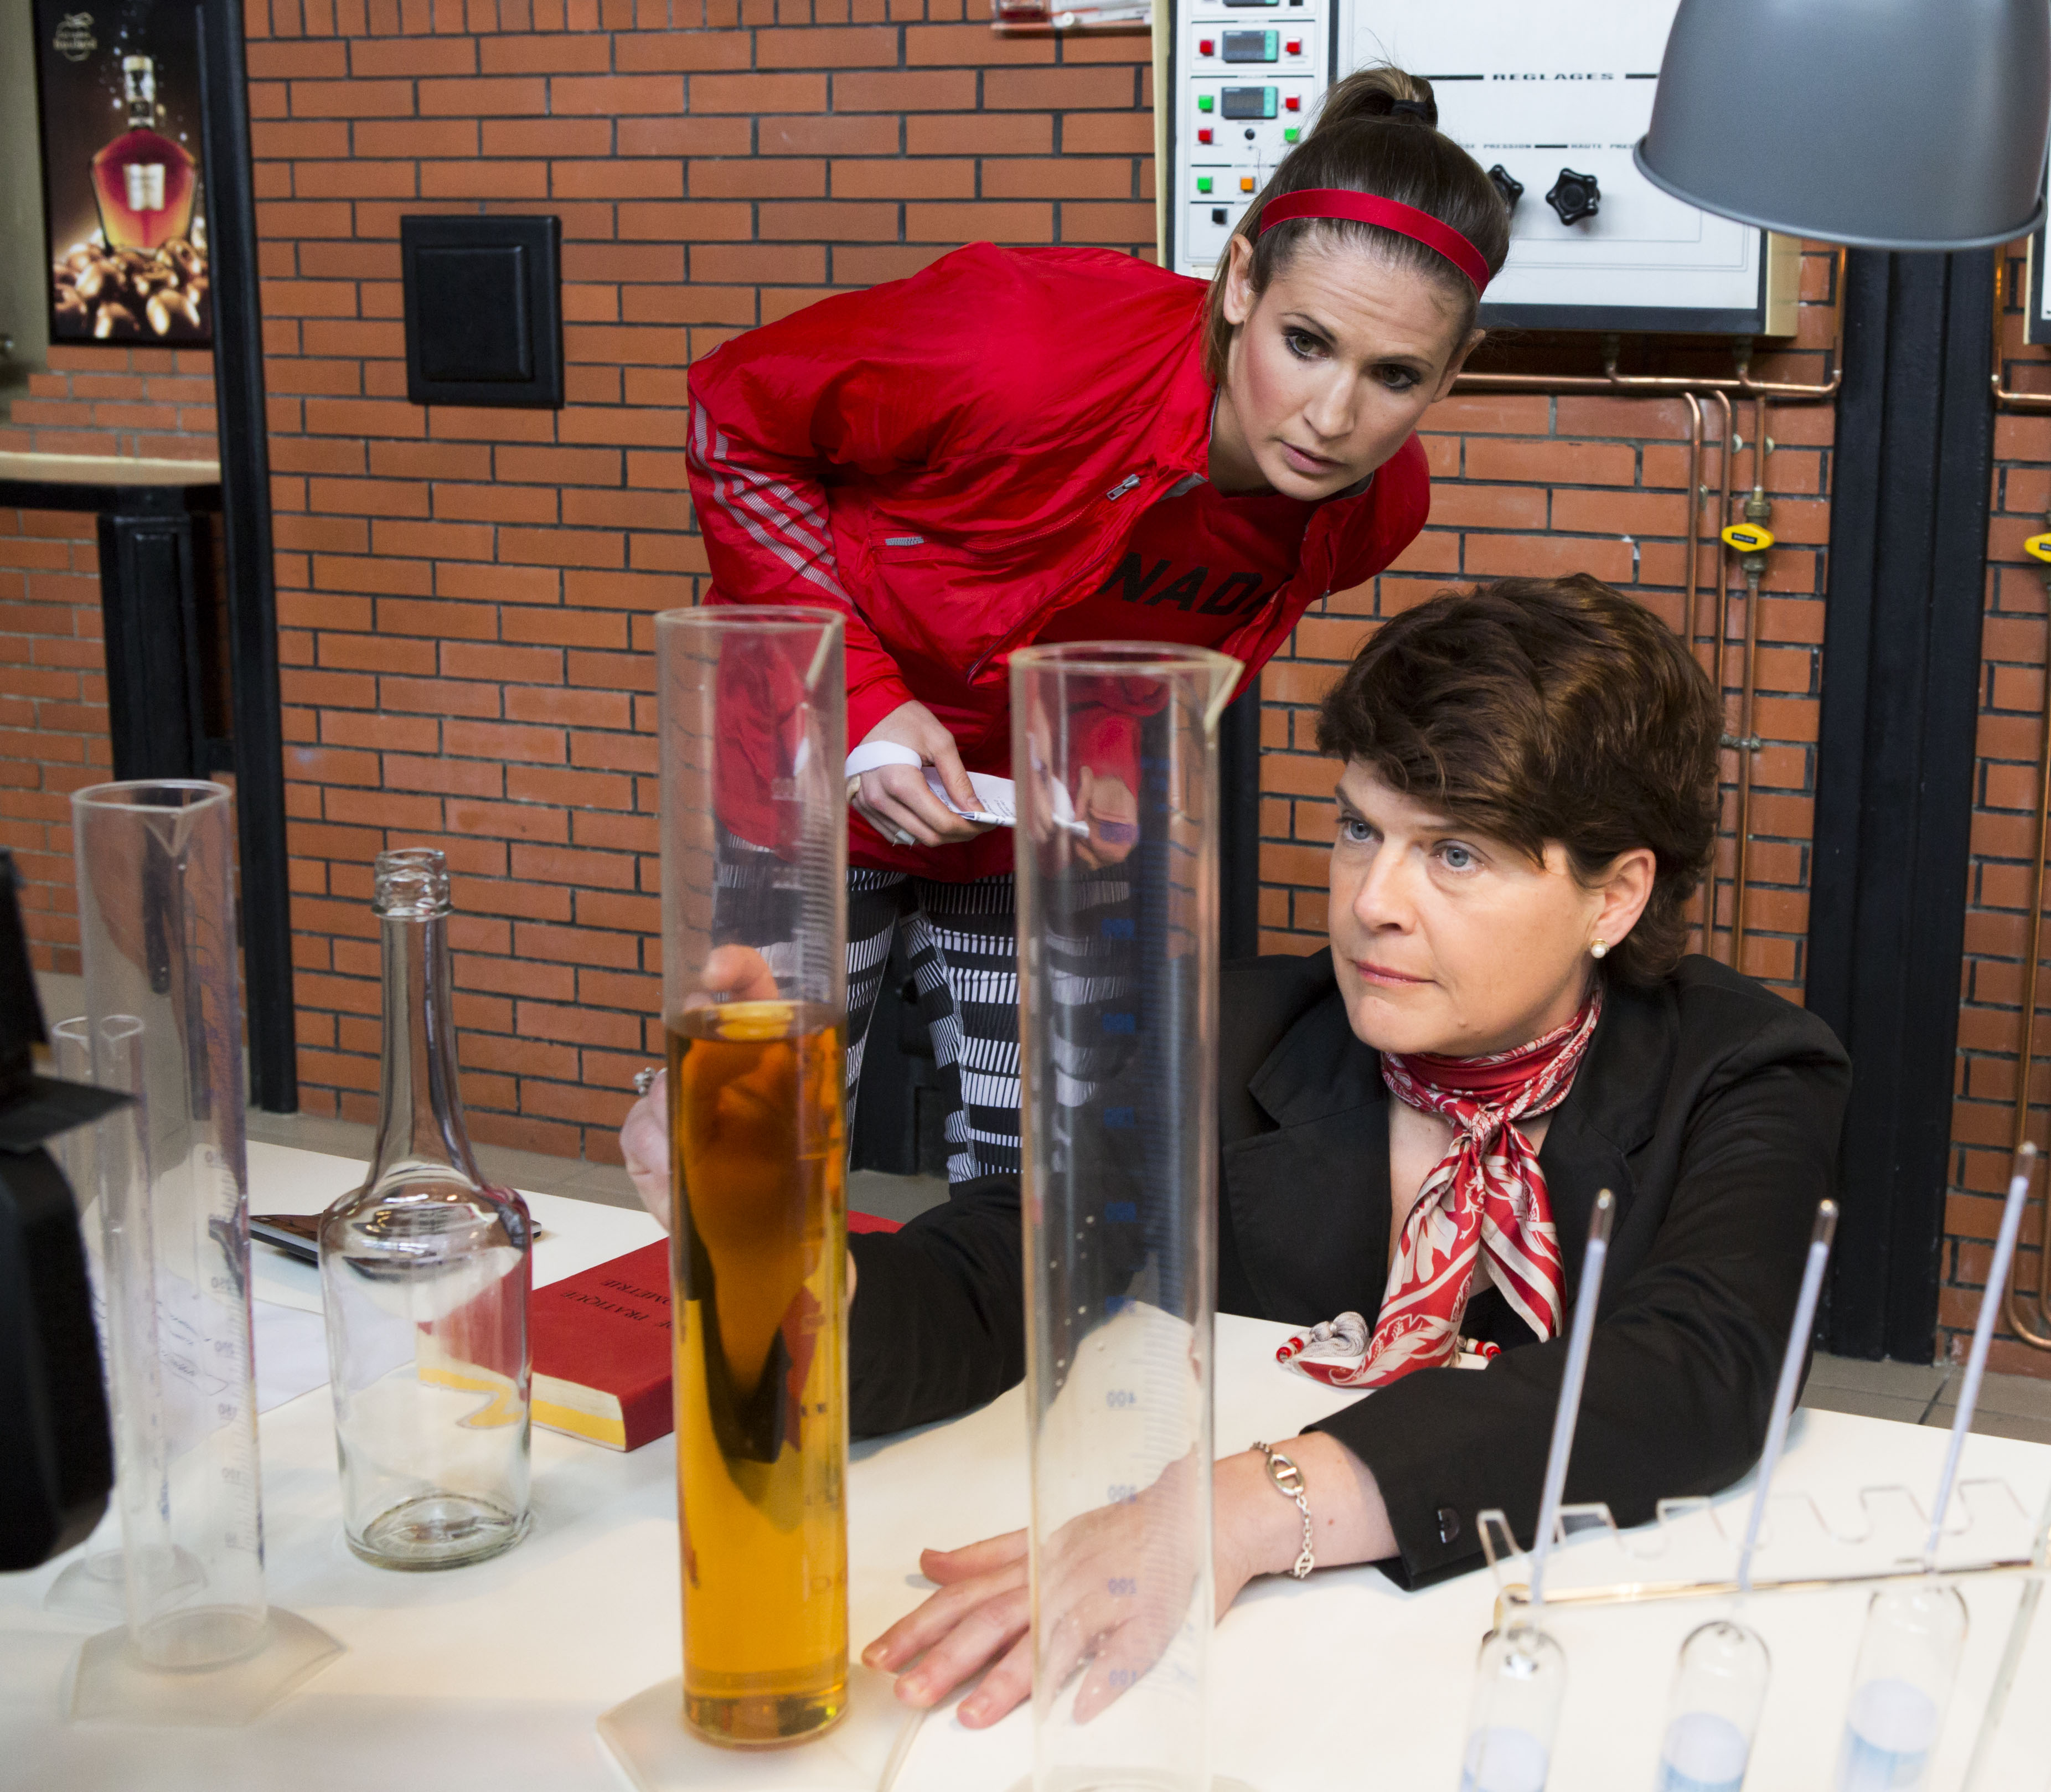 Meaghan-learns-the-science-of-Calvados-with-President-of-Calvados-Boulard-Marianna-Saloux